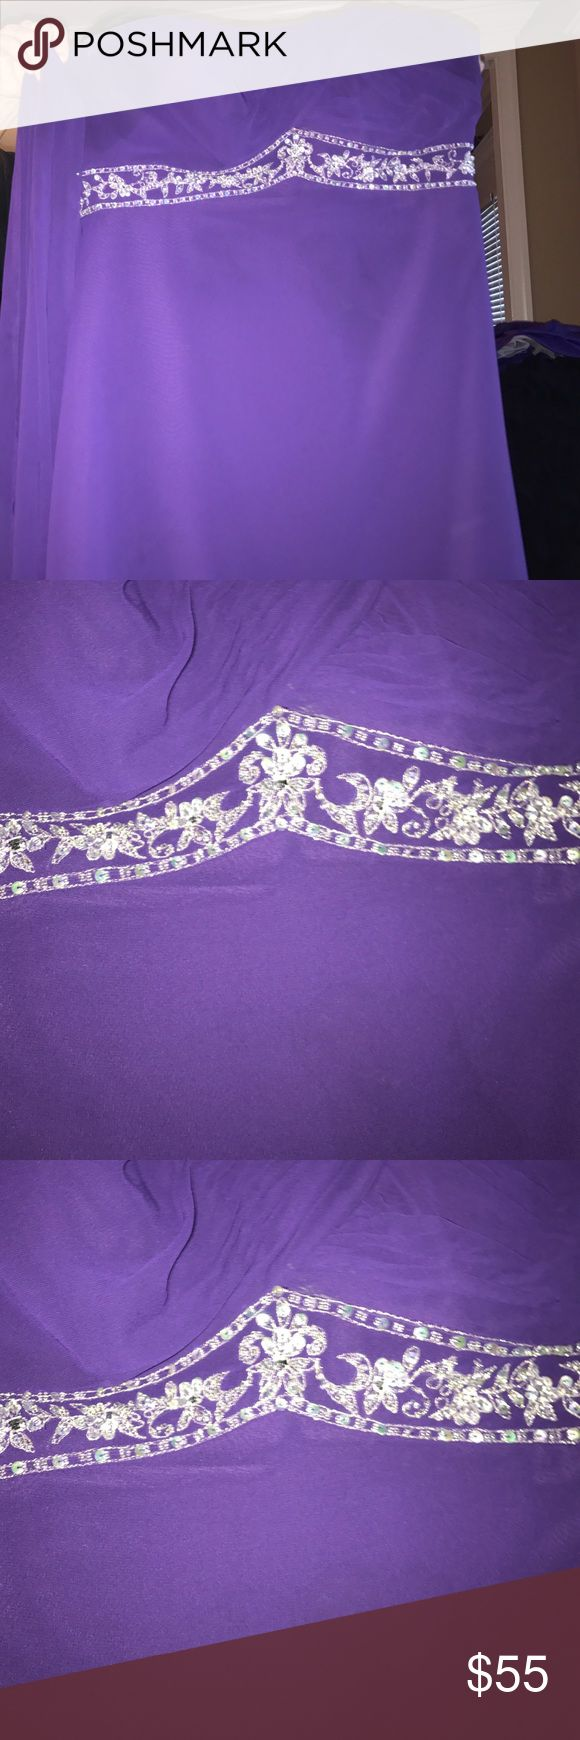 Purple Plus Size Dress Purple plus size dress worn once for a wedding. It is the same as the purple dress I have listed but for plus size. It comes with a sheer piece for your shoulders and straps that can be added. Mori Lee Dresses Prom